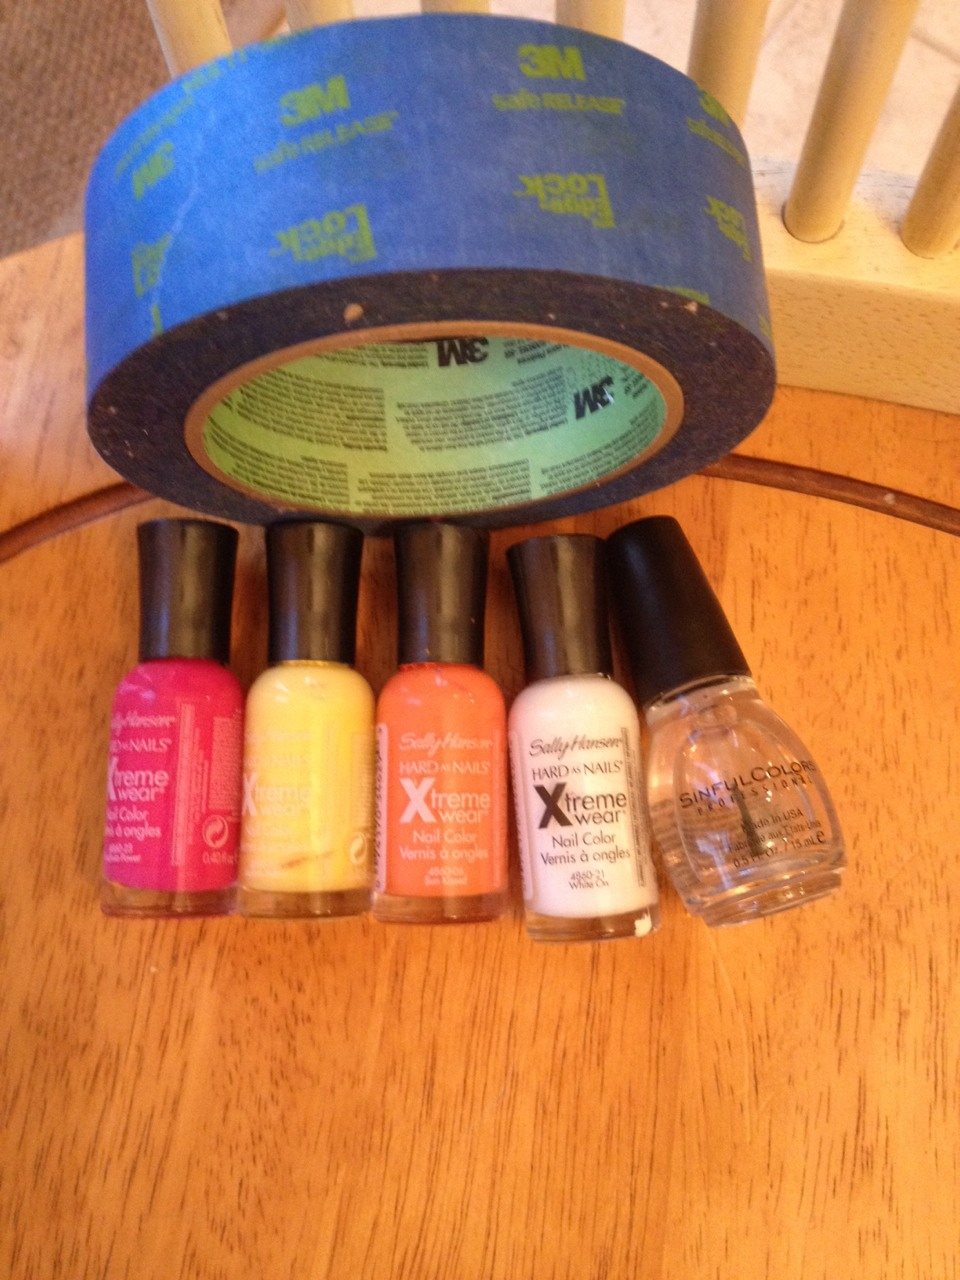 You will need some type of tape, a hot pink, yellow, orange, white, and a clear coat nail polish. I am using Sally Hansen Xtreme wear nail polish, and sinful colors clear coat, with edge lock tape.